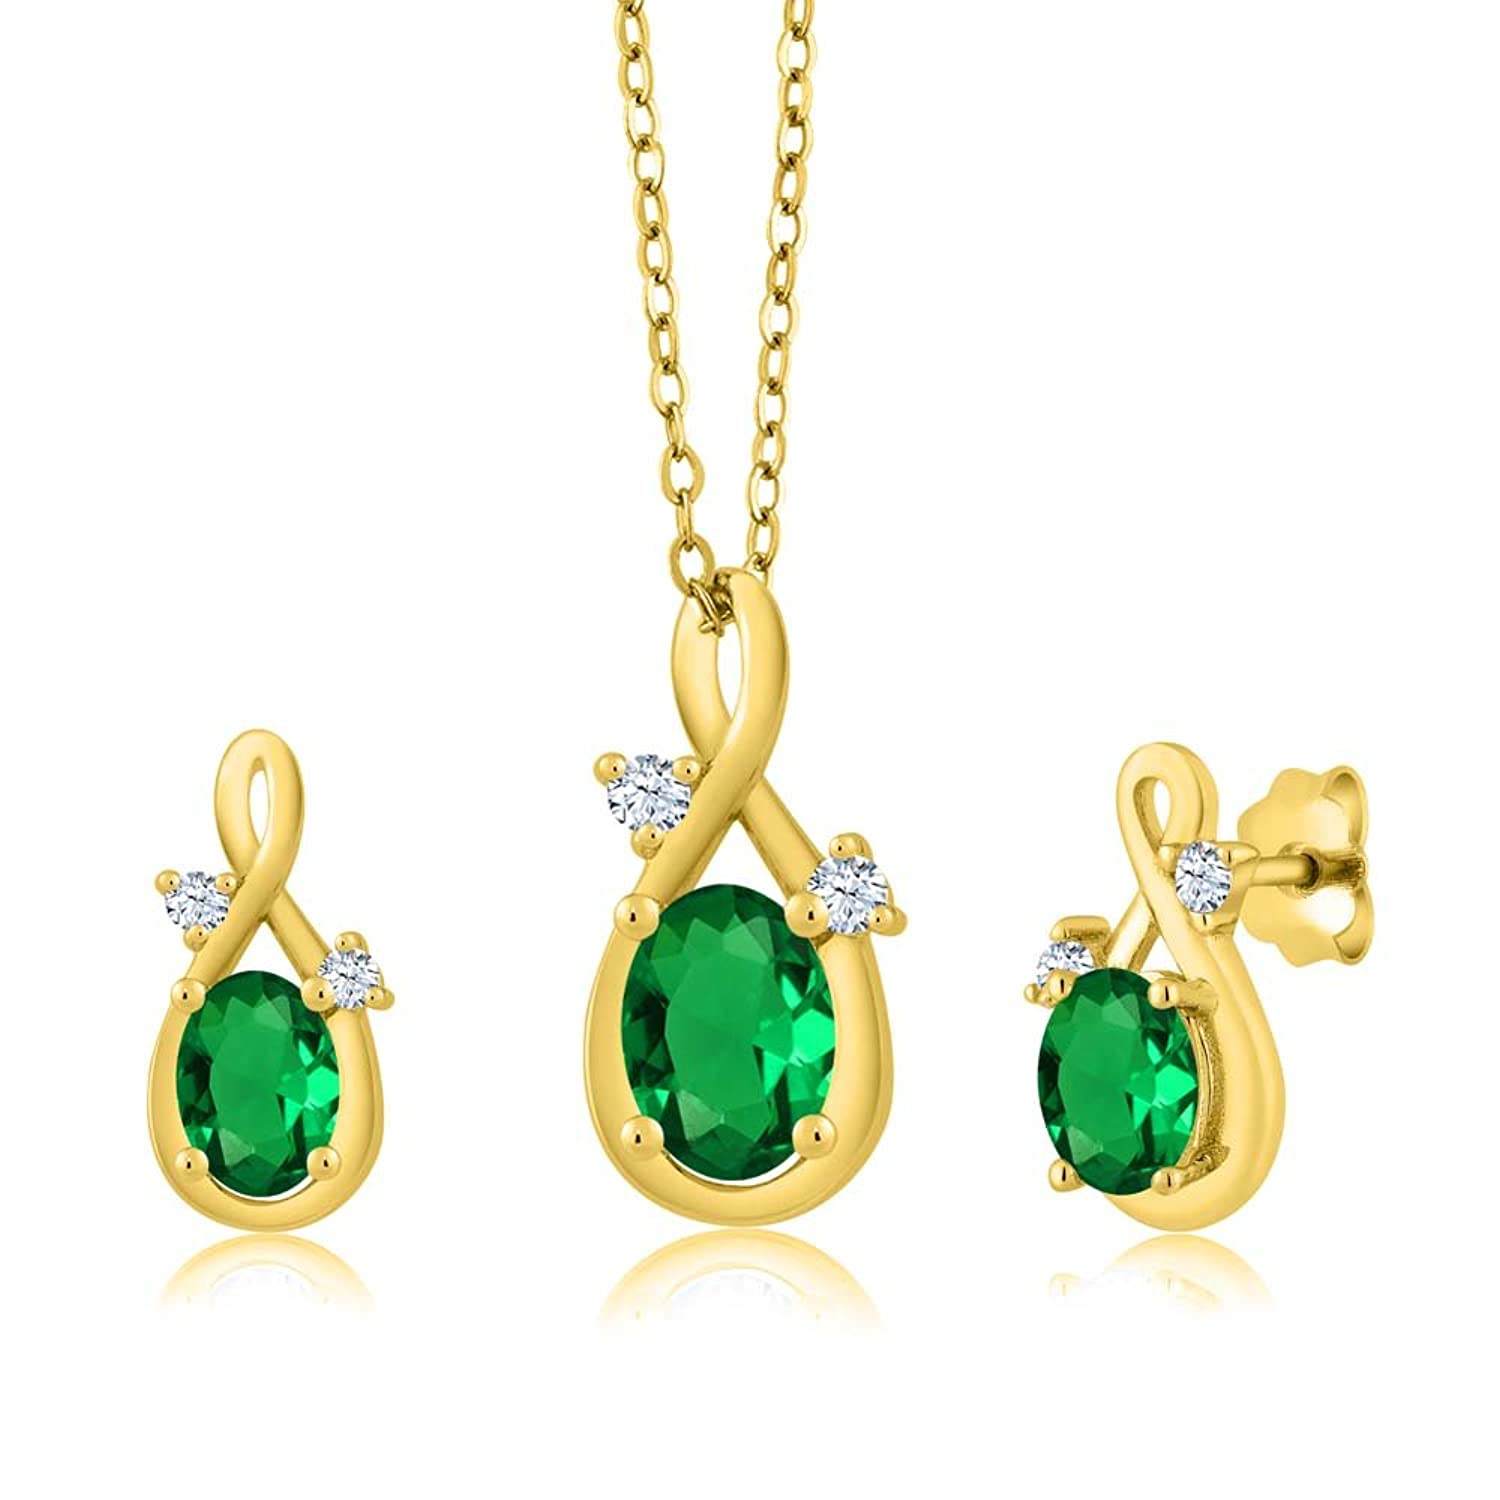 1.49 Ct Oval Green Simulated Emerald 14K Yellow Gold Pendant Earrings Set